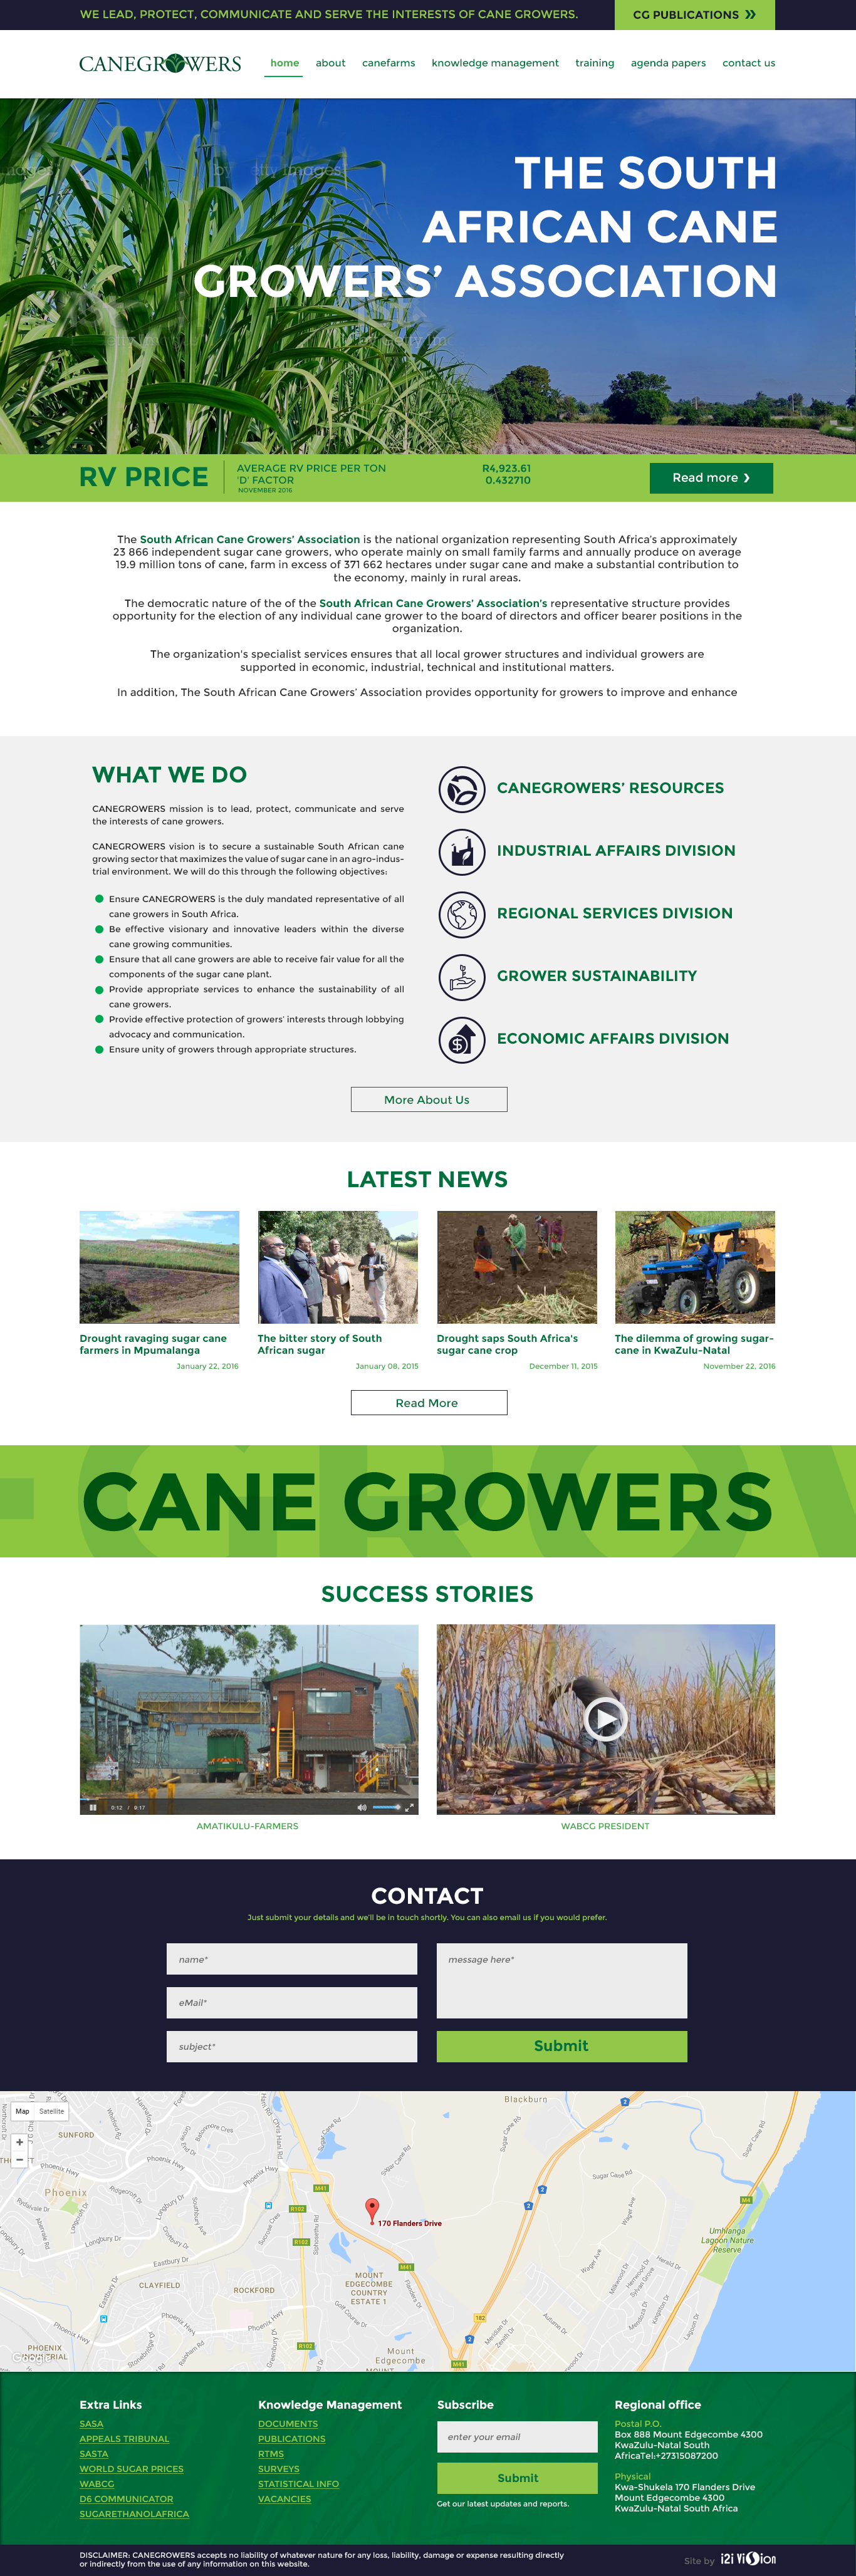 South African Canegrowers' Association